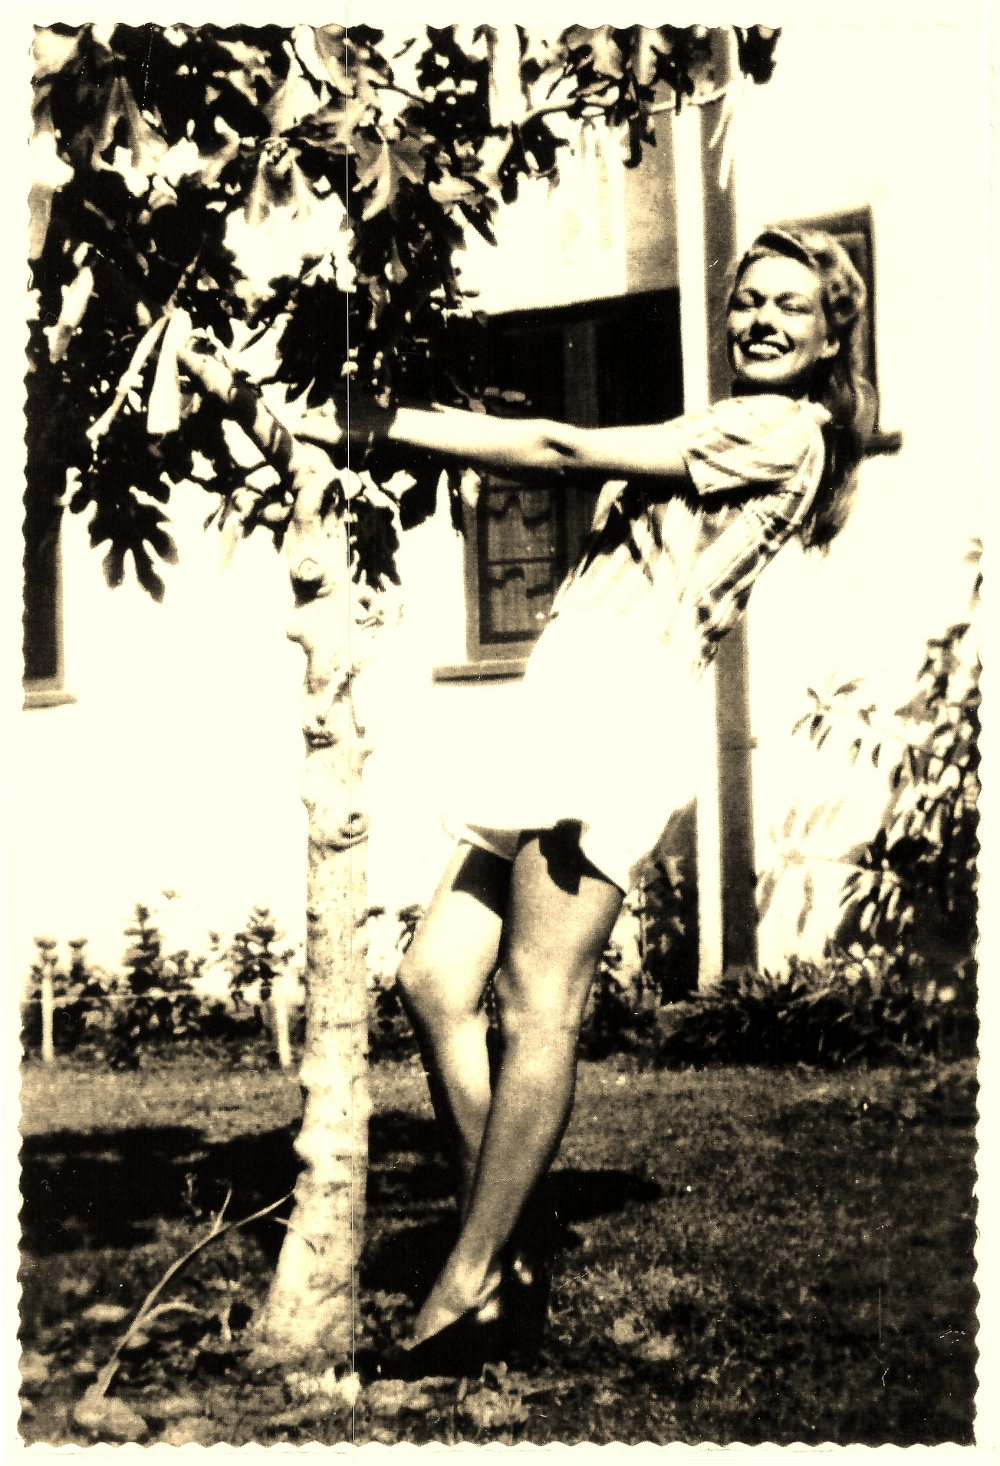 Jeri Simpson in California, circa 1948 or 1950